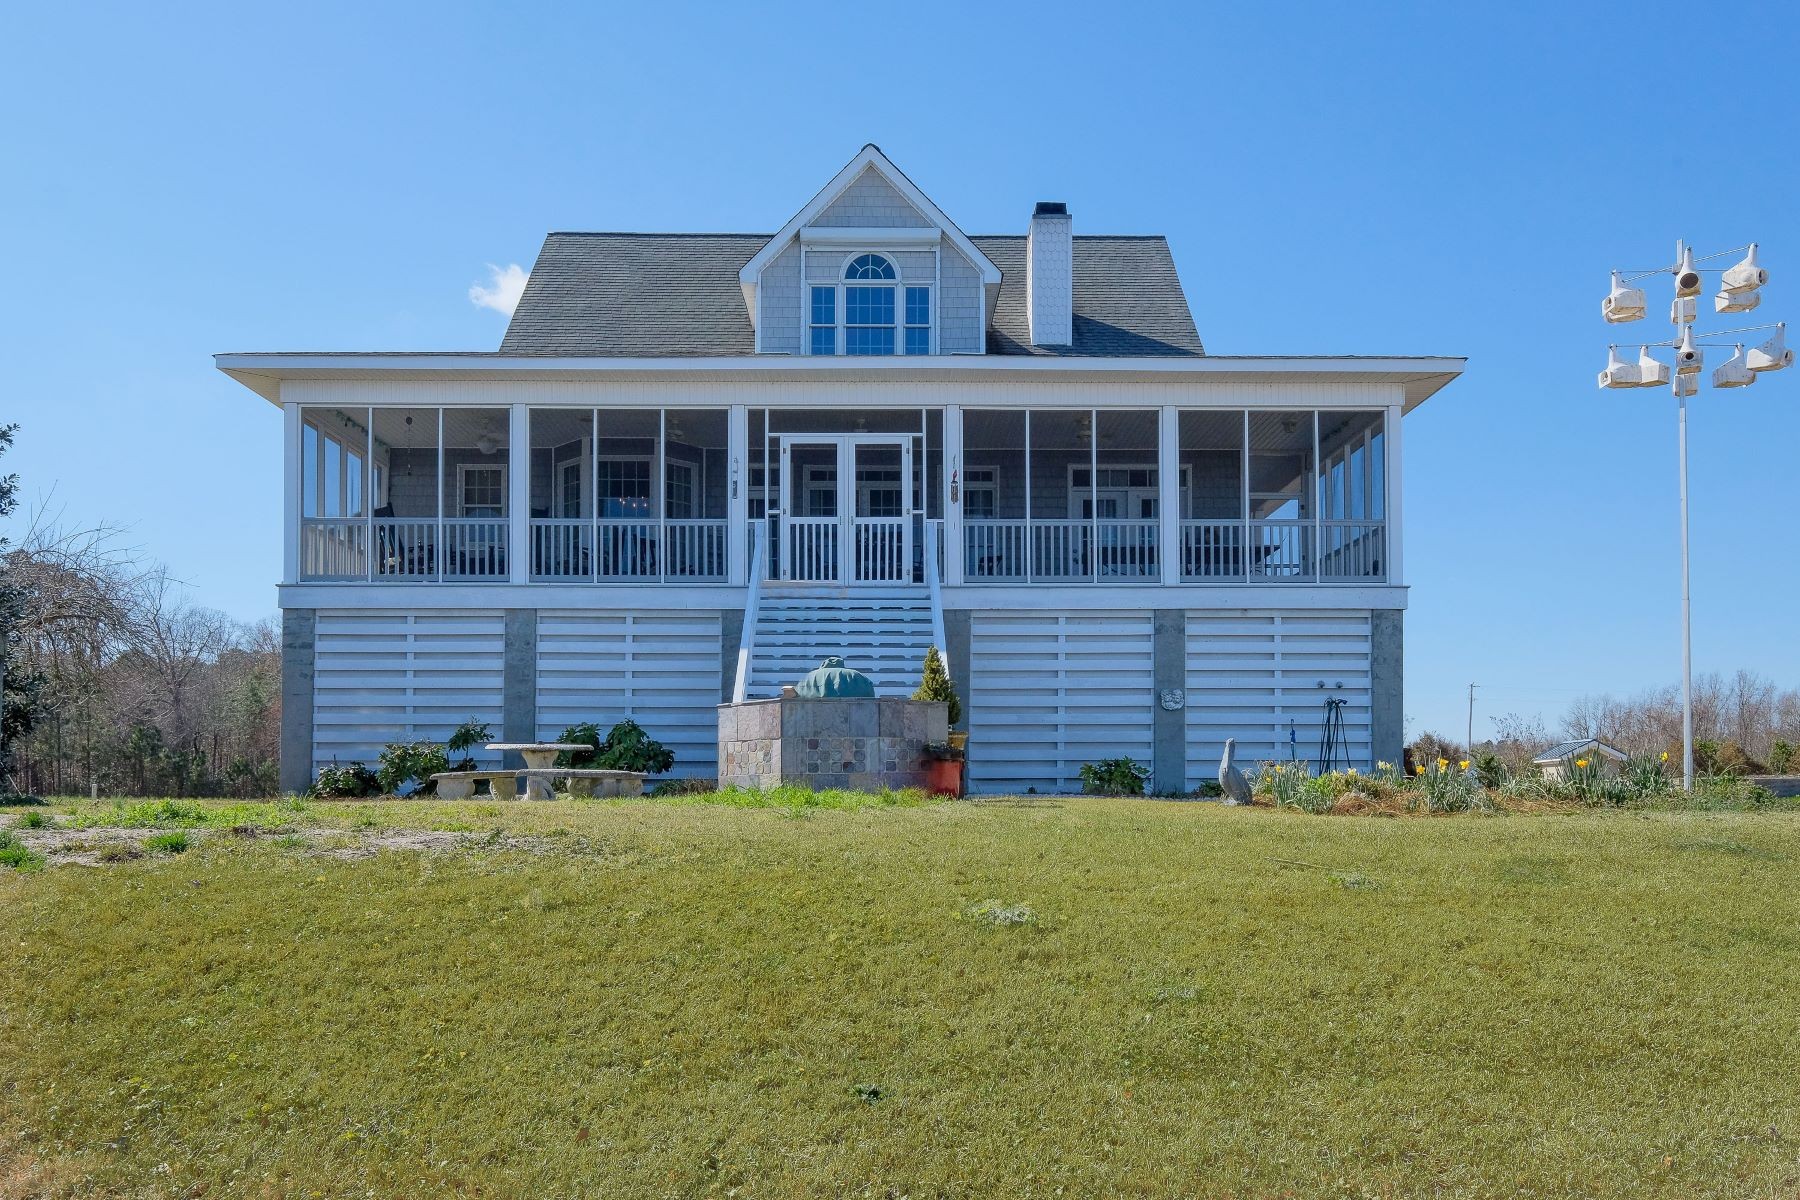 Additional photo for property listing at Bal Gra Waterfront Home 104 S Wheeler Dr Merry Hill, North Carolina 27957 United States